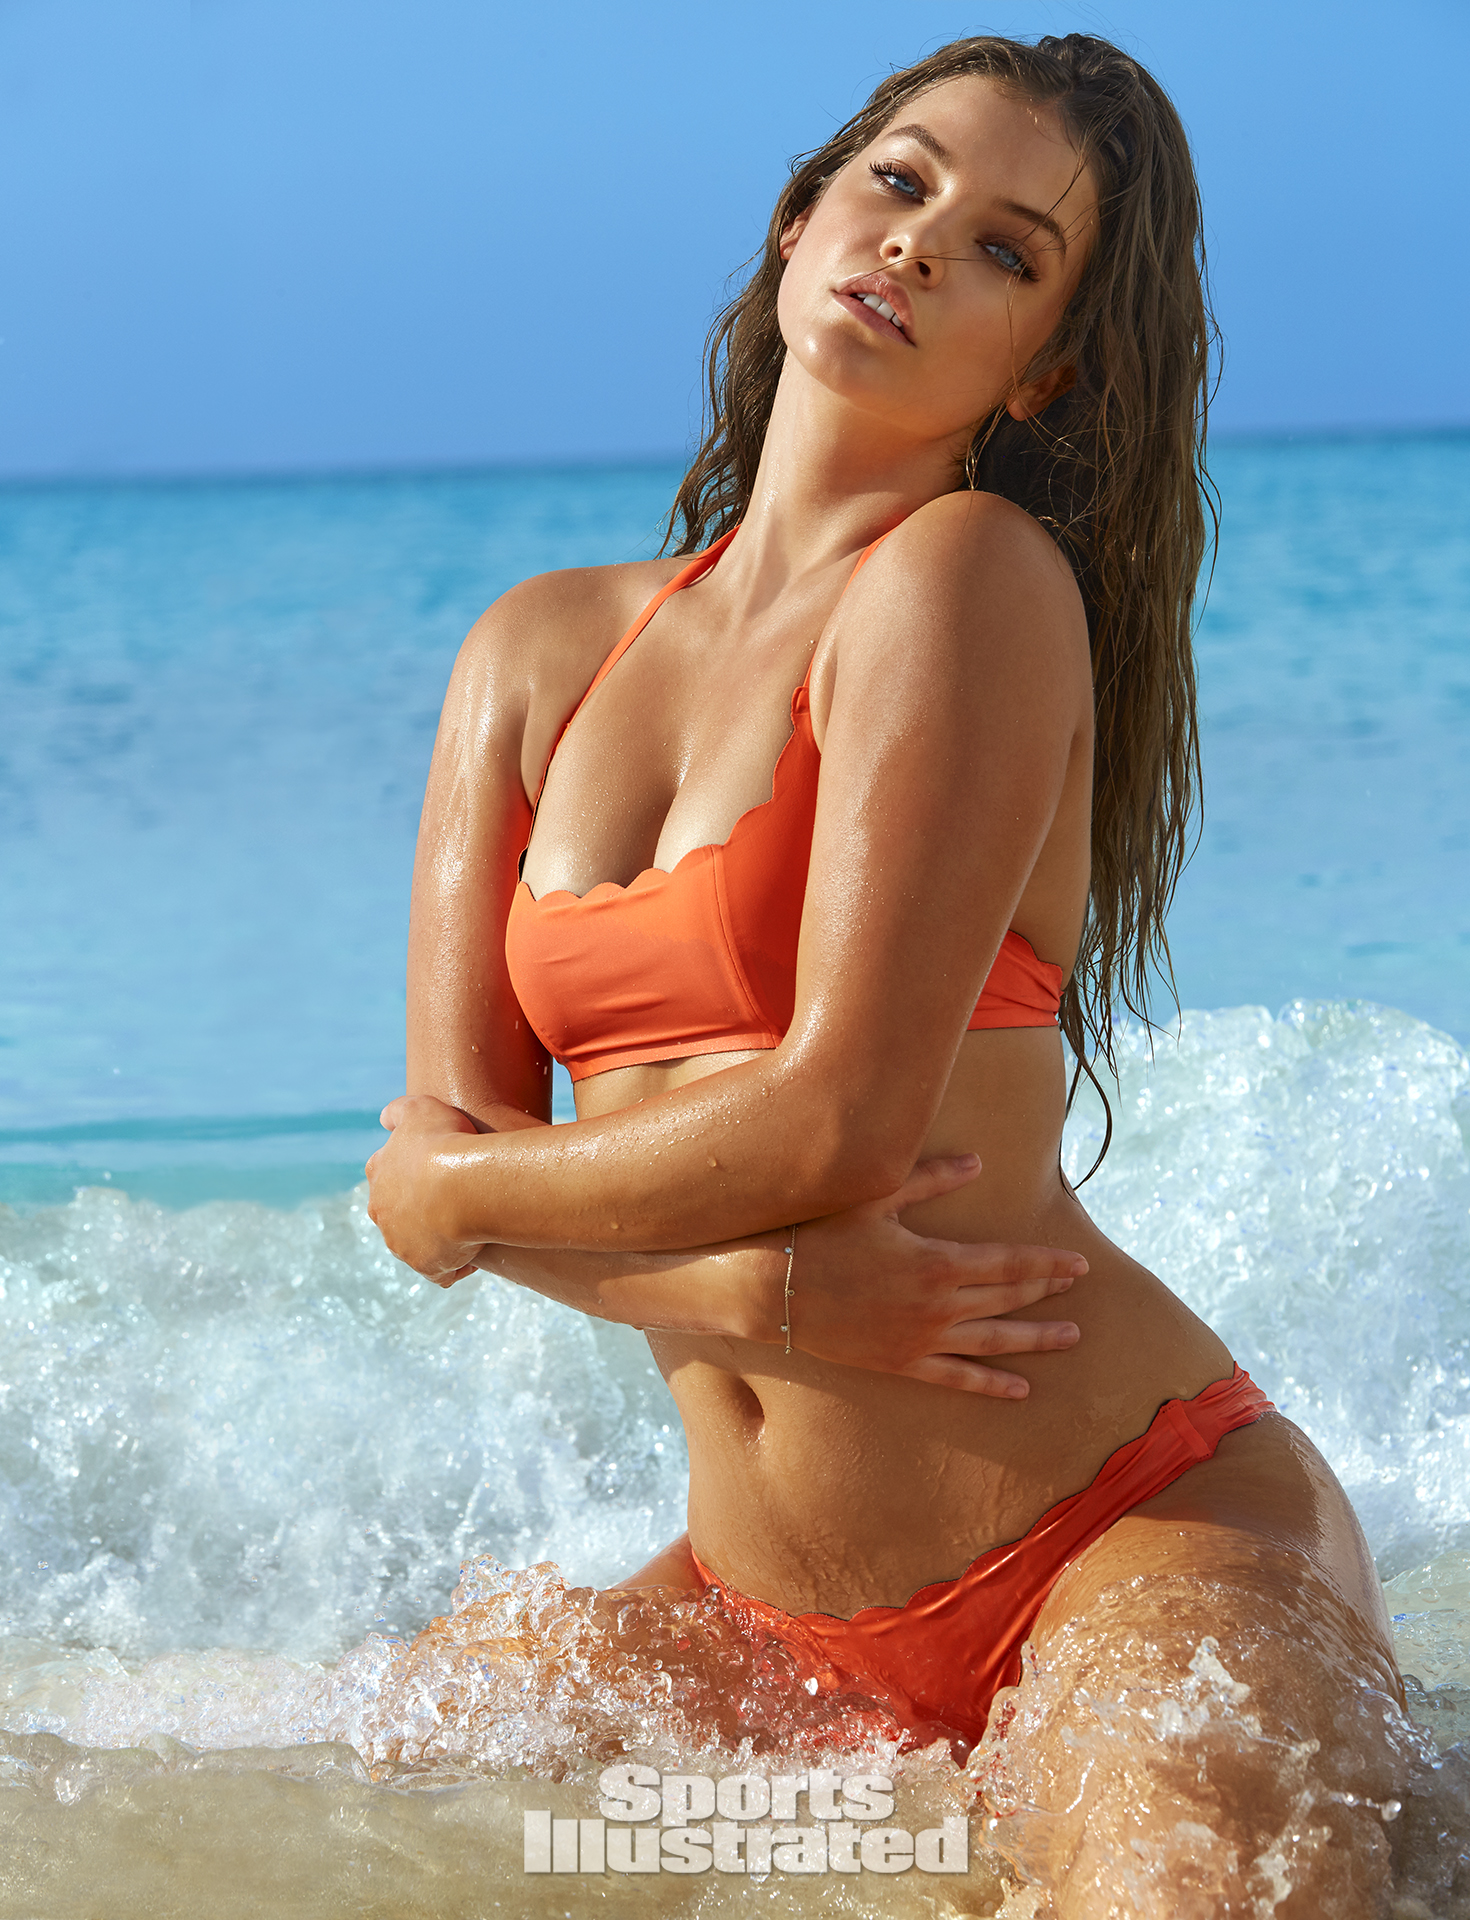 Barbara Palvin was photographed by James Macari in Turks & Caicos. Swimsuit by PilyQ.